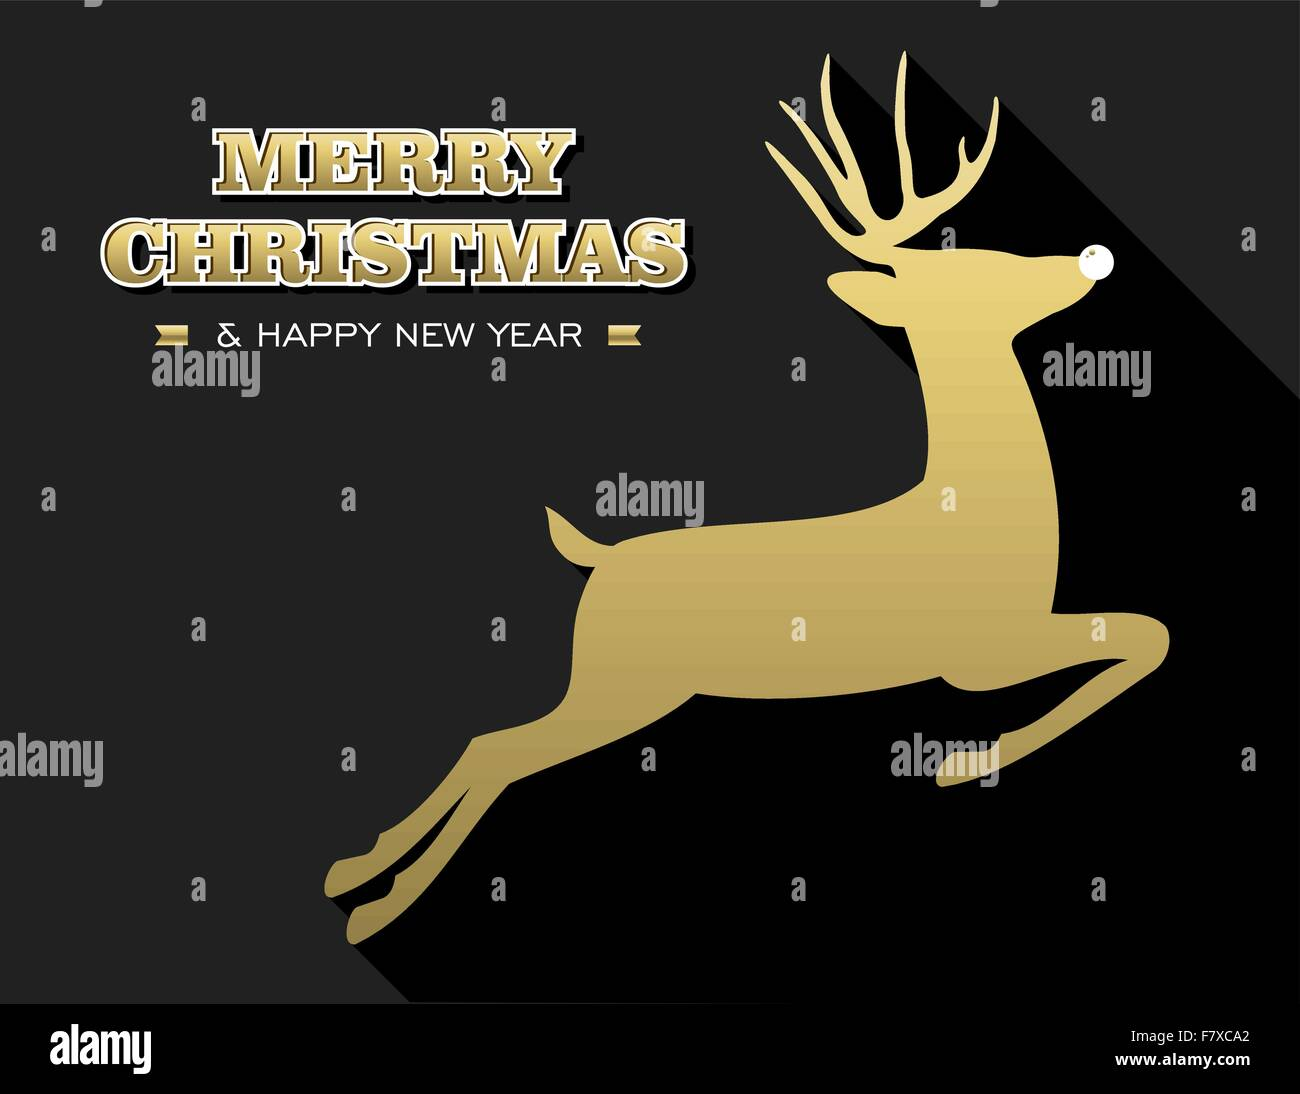 Merry Christmas Happy New Year Design In Gold And Black With Reindeer Silhouette Ideal For Holiday Greeting Card Poster Or Web